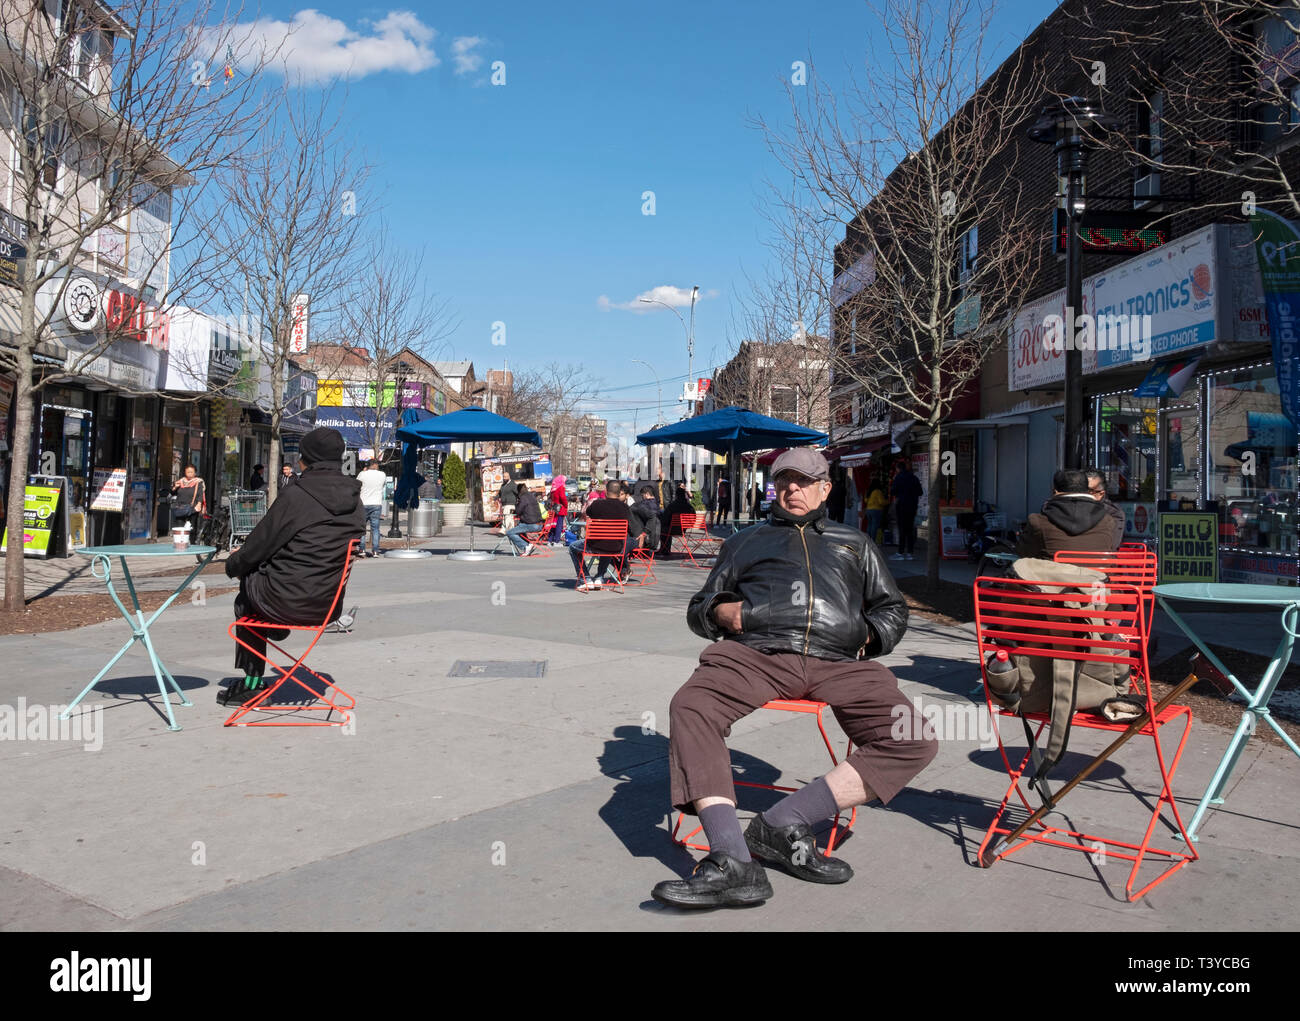 A middle aged man sits in a public space on 37th Road in Jackson Heights, Queens, New York City. - Stock Image